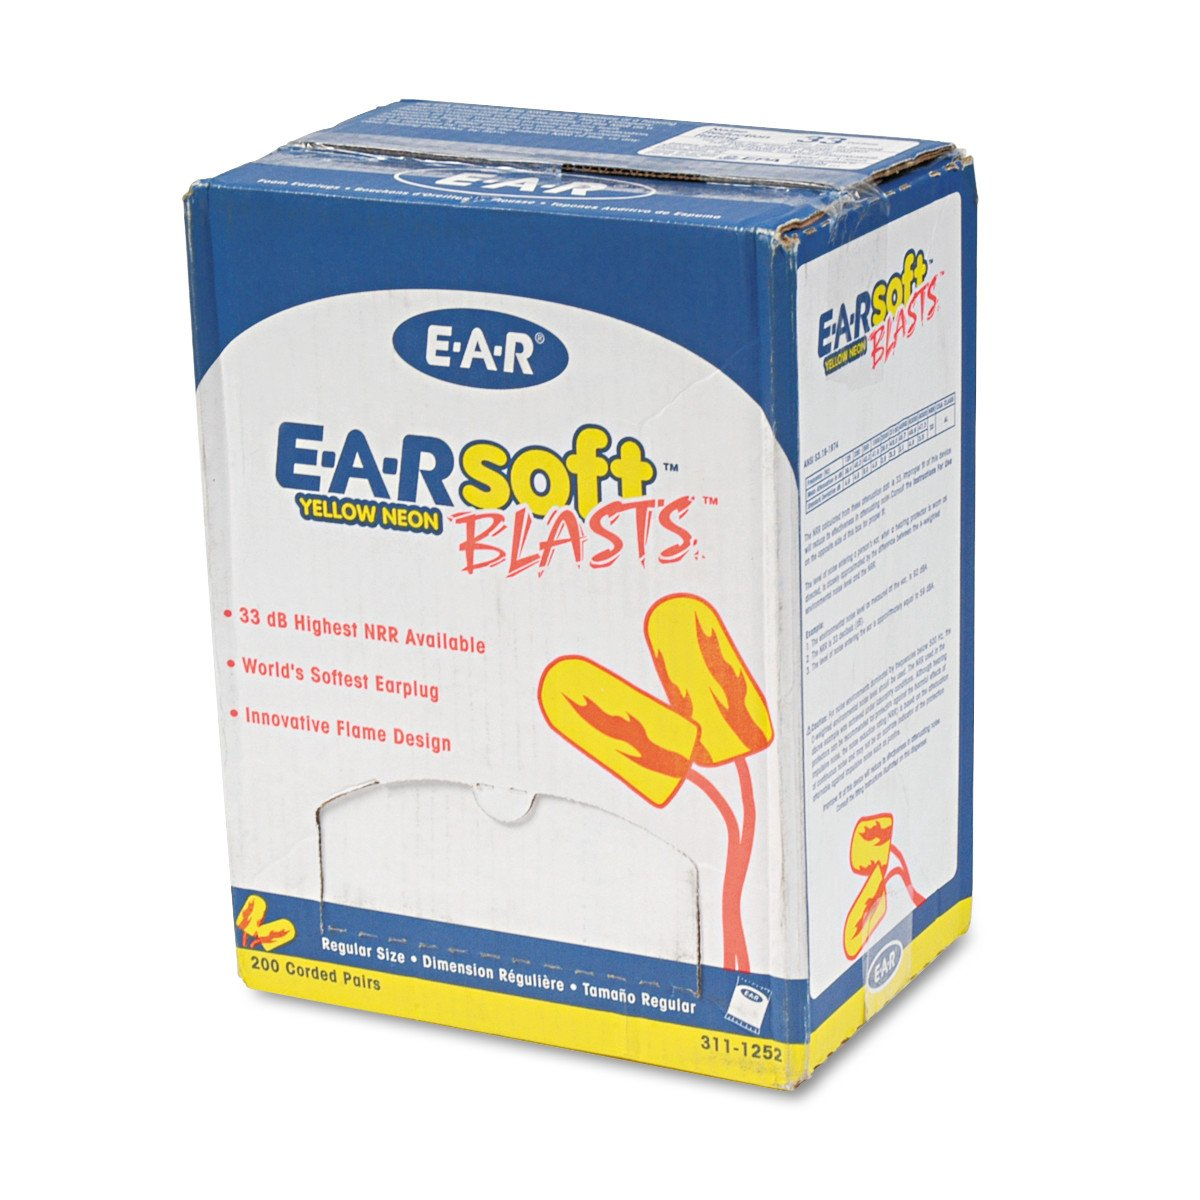 3M E-A-R Topics on TV Earsoft Corded 200-Pair Earplugs Neon Import Yellow